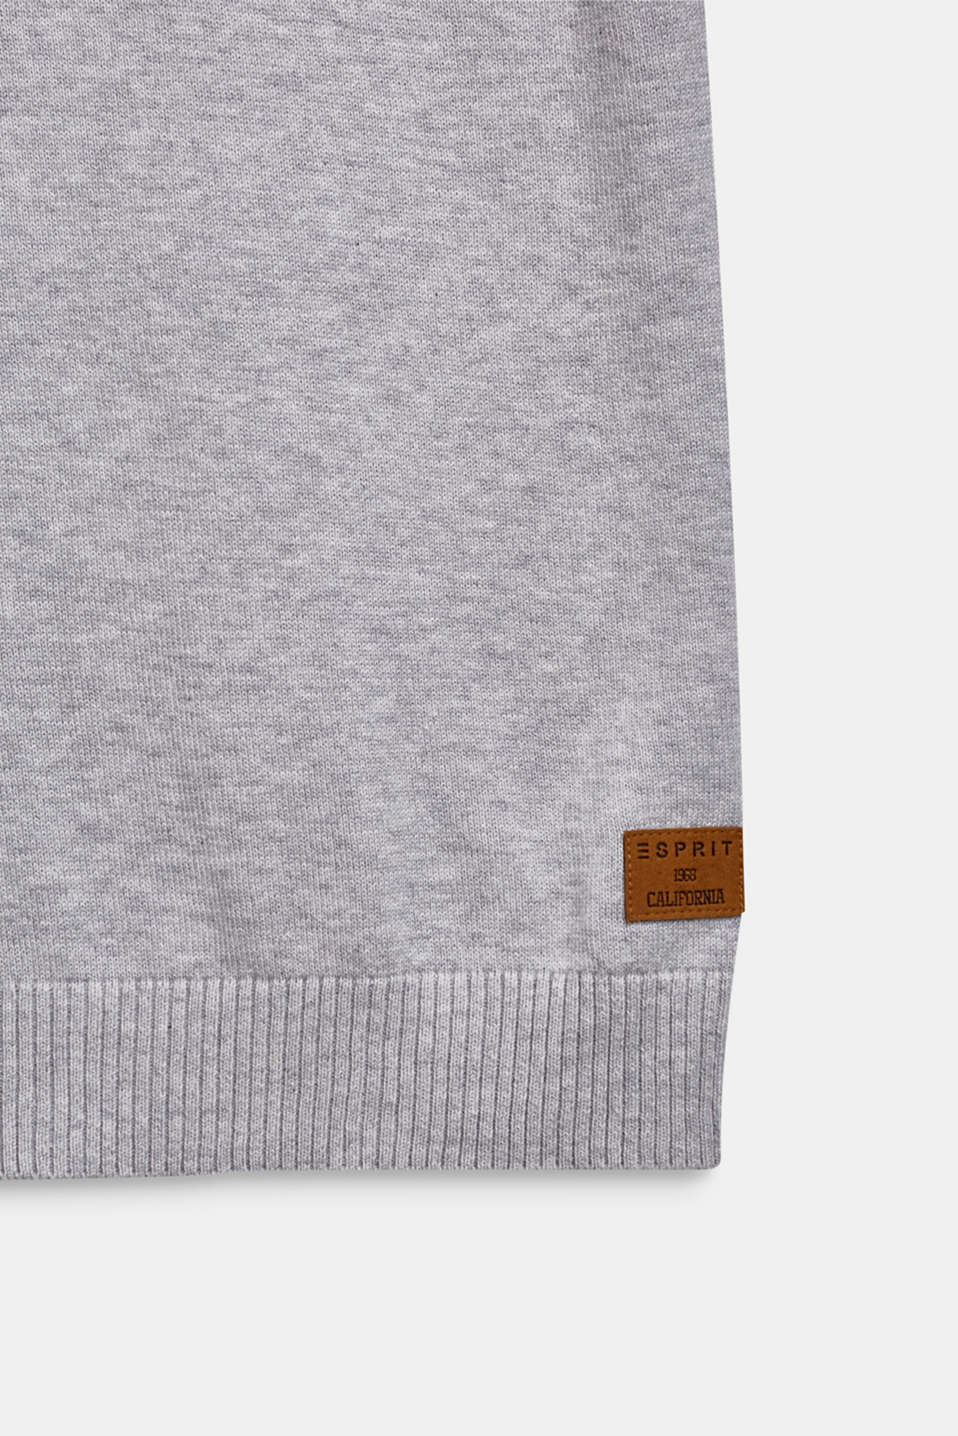 100% cotton tank top, LCHEATHER SILVER, detail image number 2